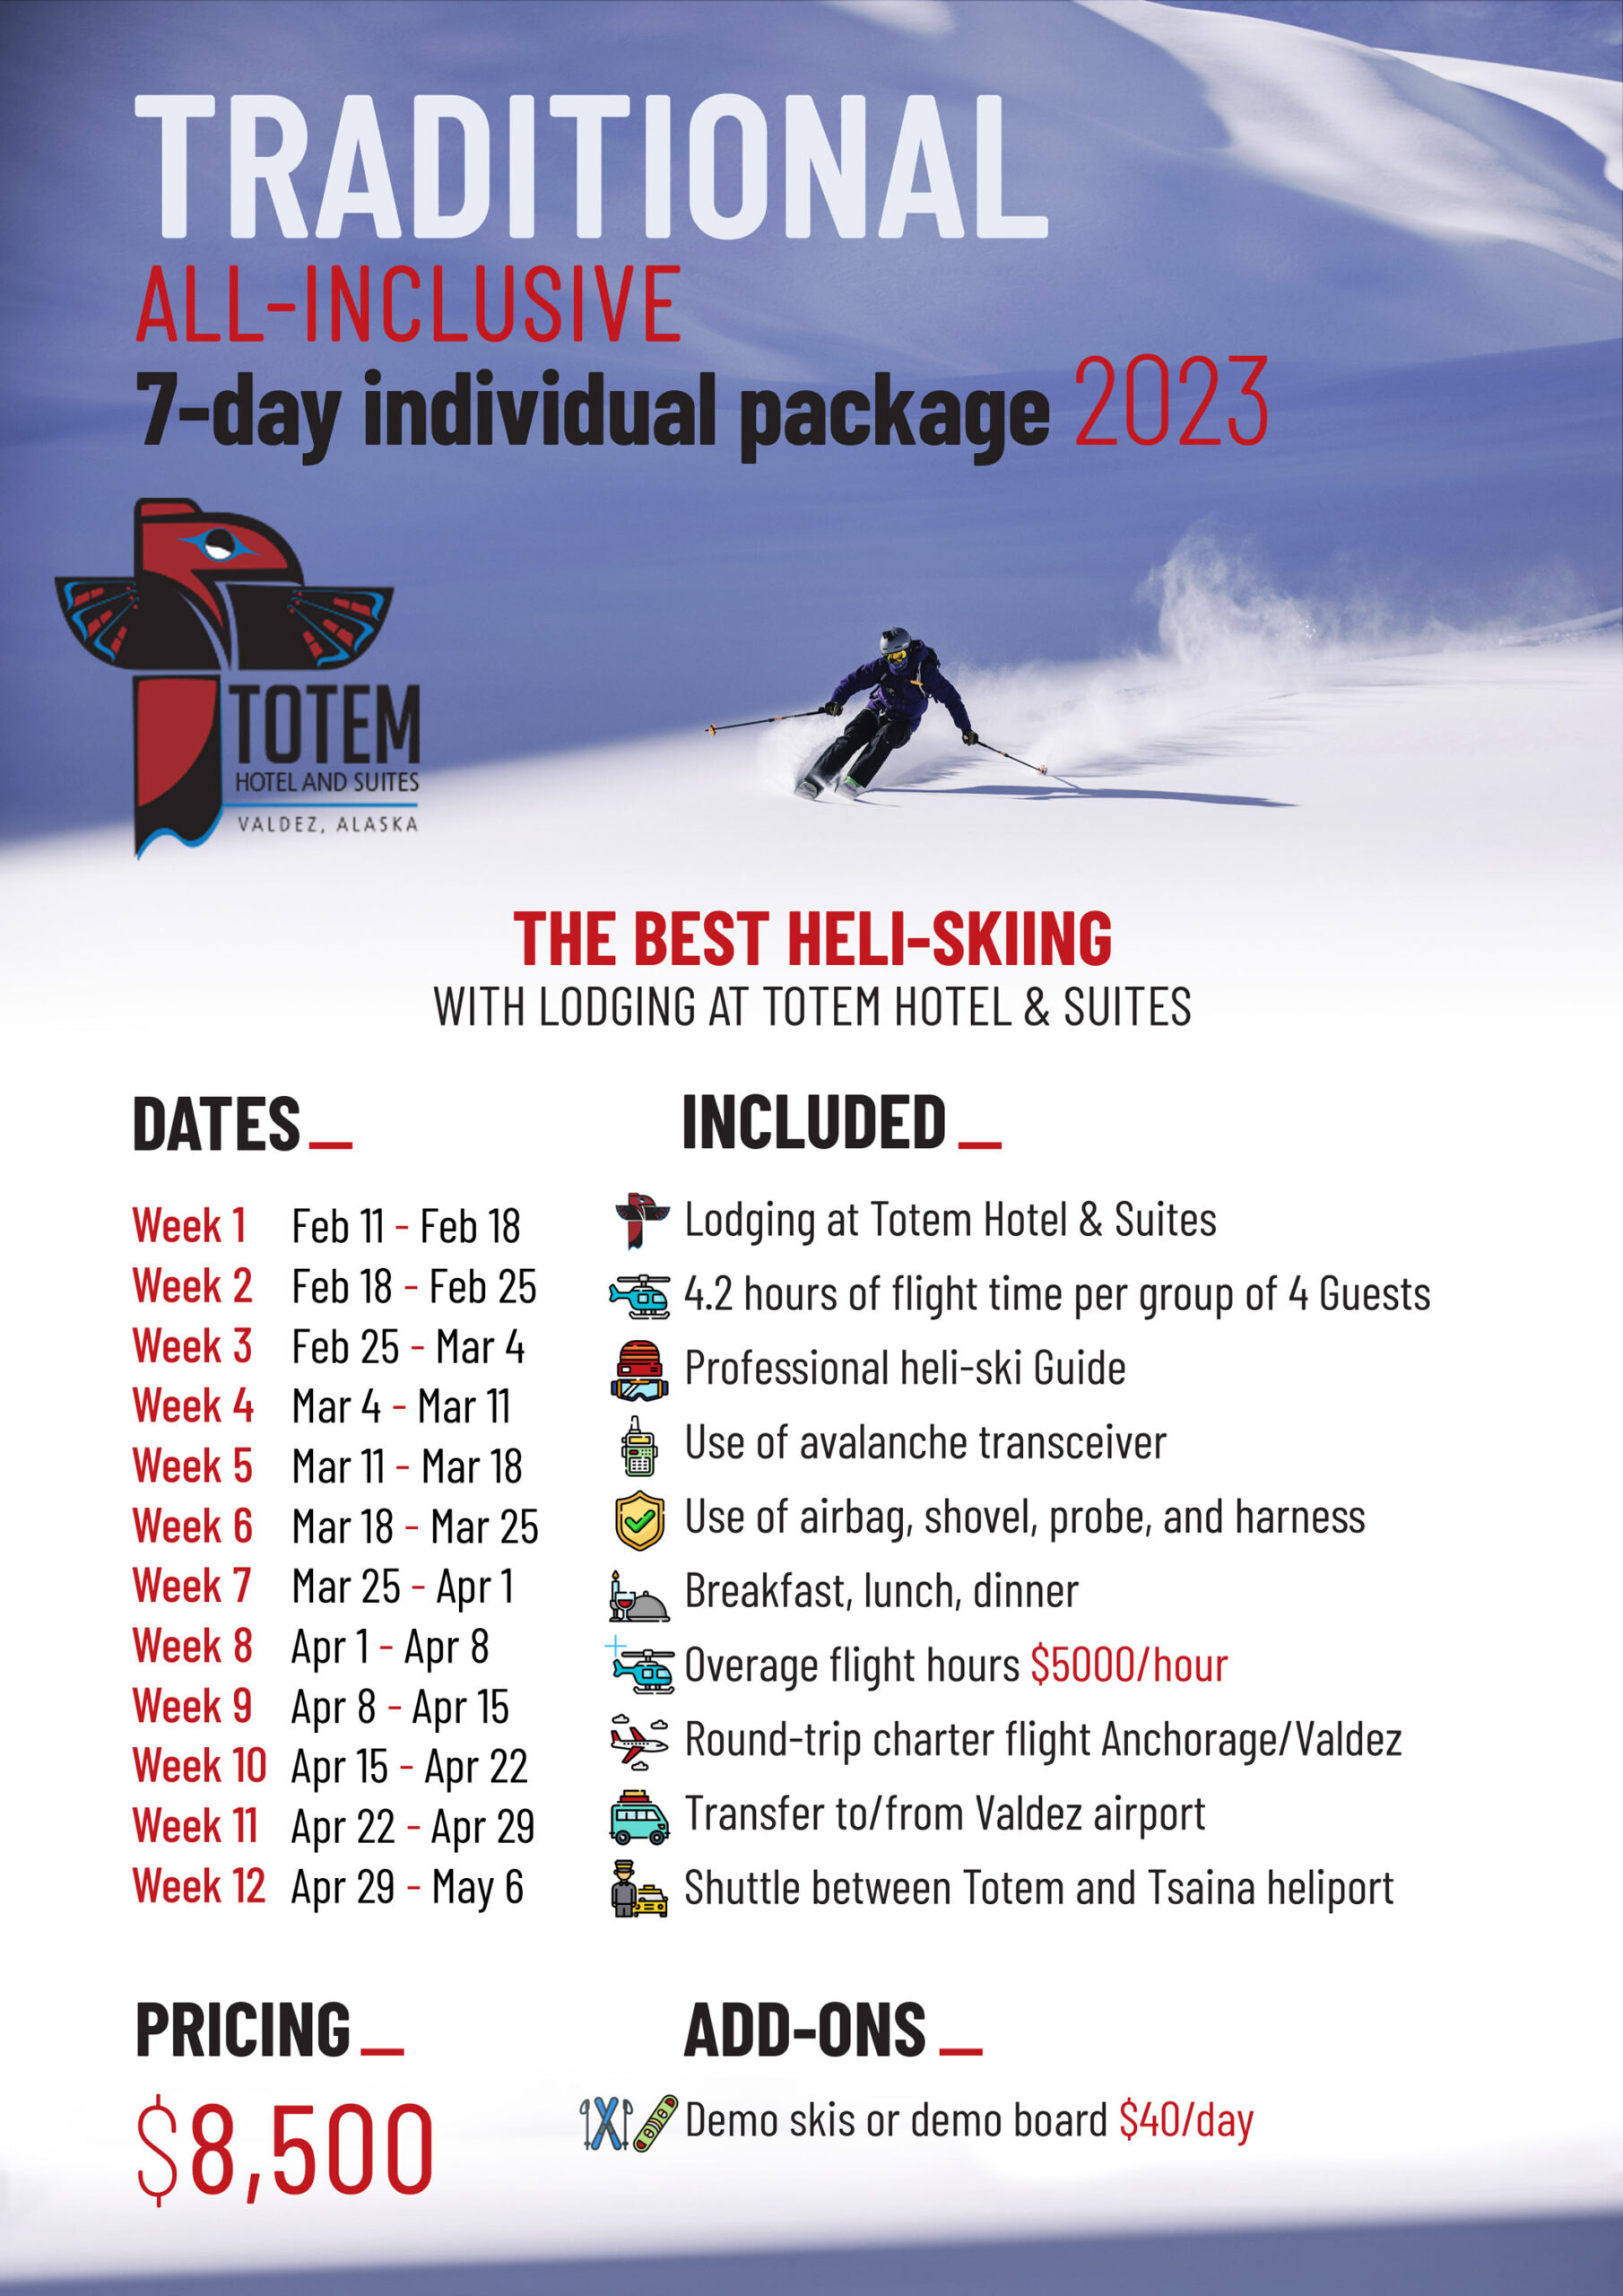 ALL INCLUSIVE TRADITIONAL PACKAGE